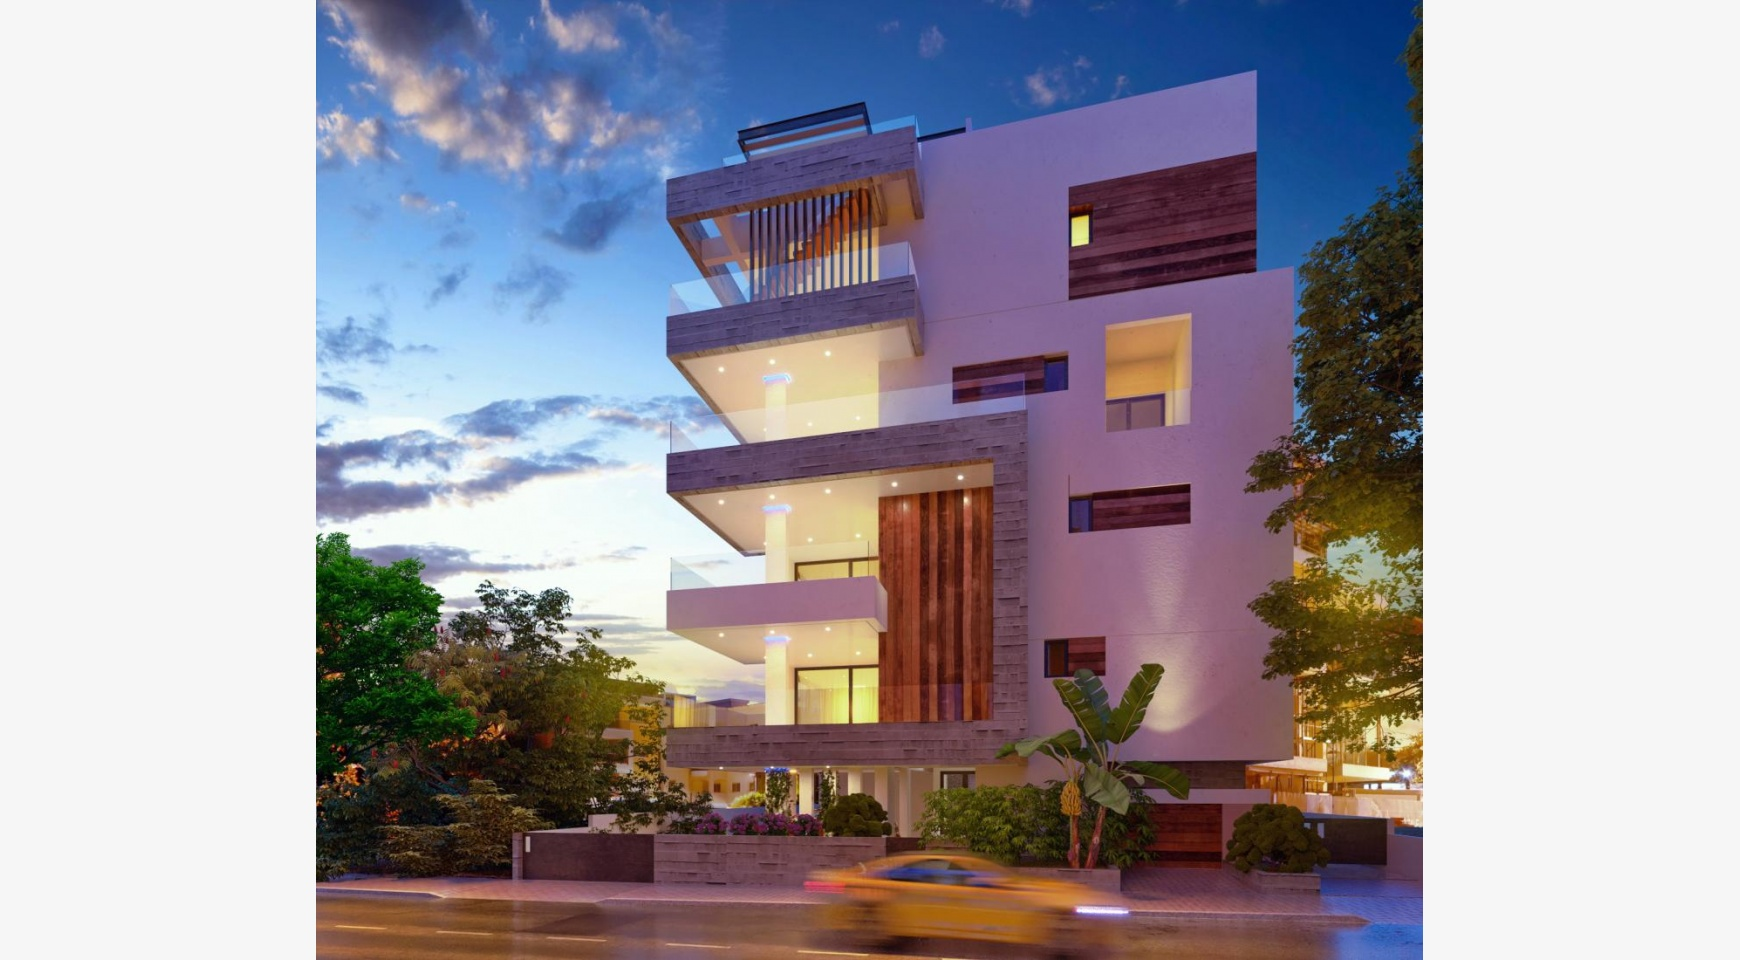 New 3 Bedroom Apartment in a Contemporary Building near the Sea - 2